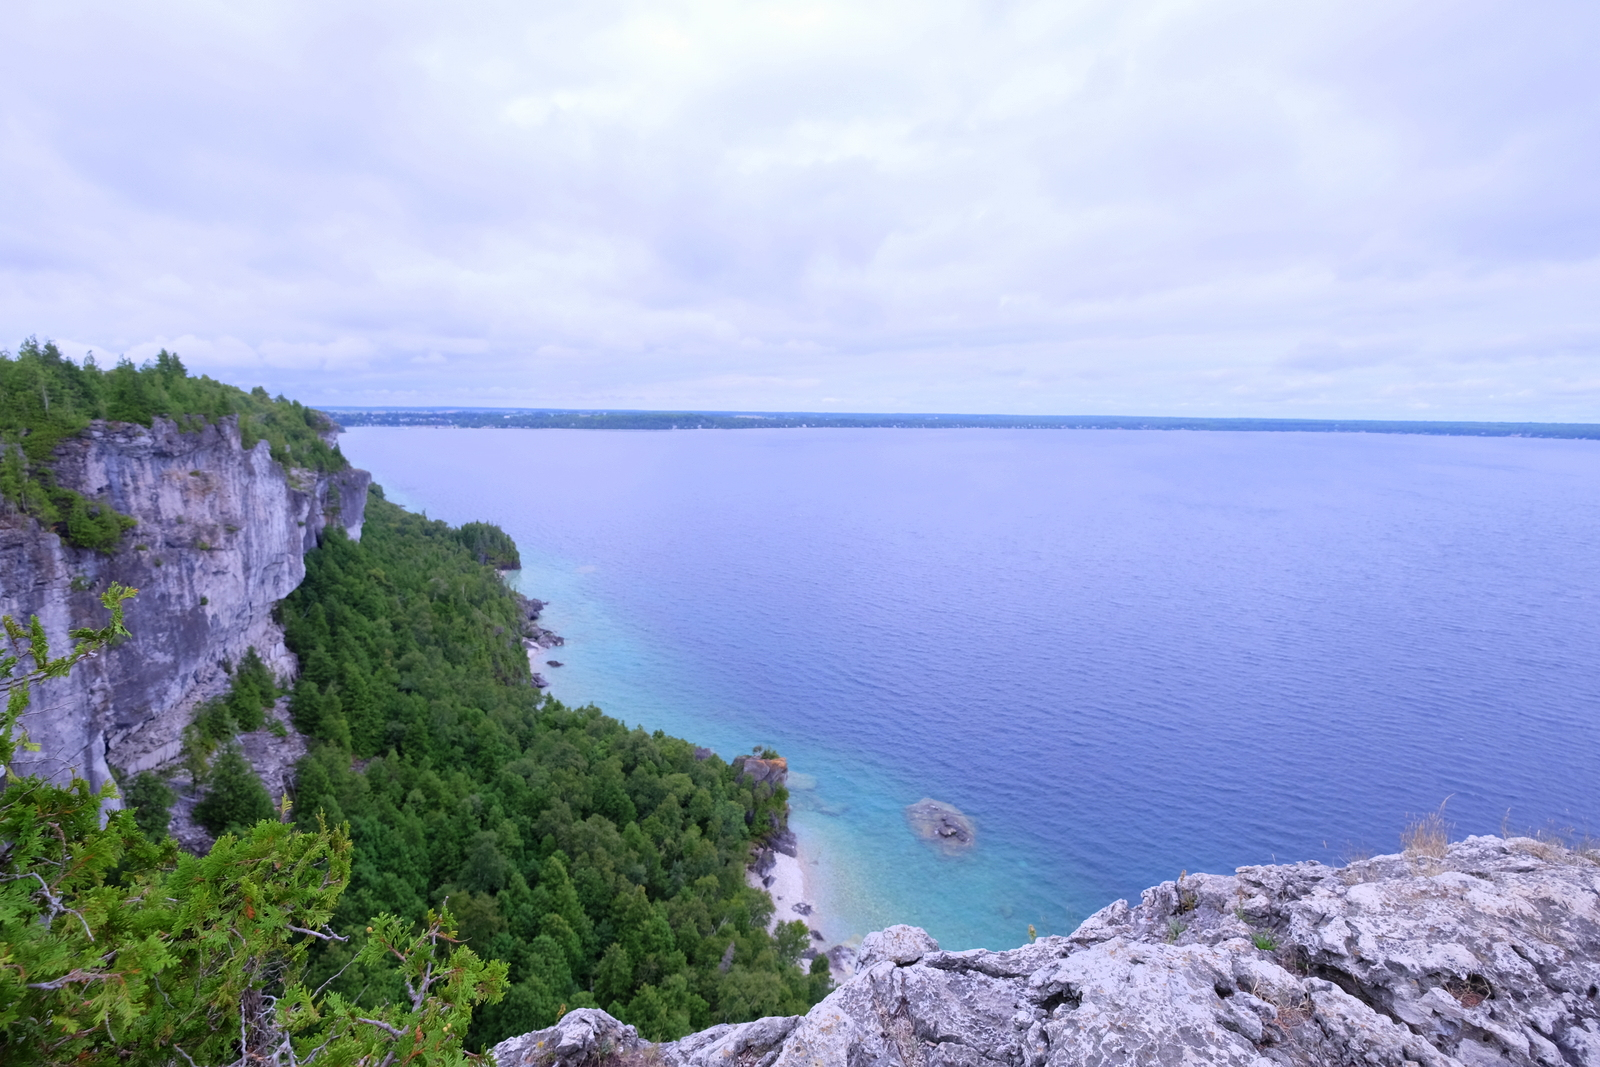 The view from the Lion's Head Lookout is one of the great sights of Ontario. JIM BYERS PHOTO